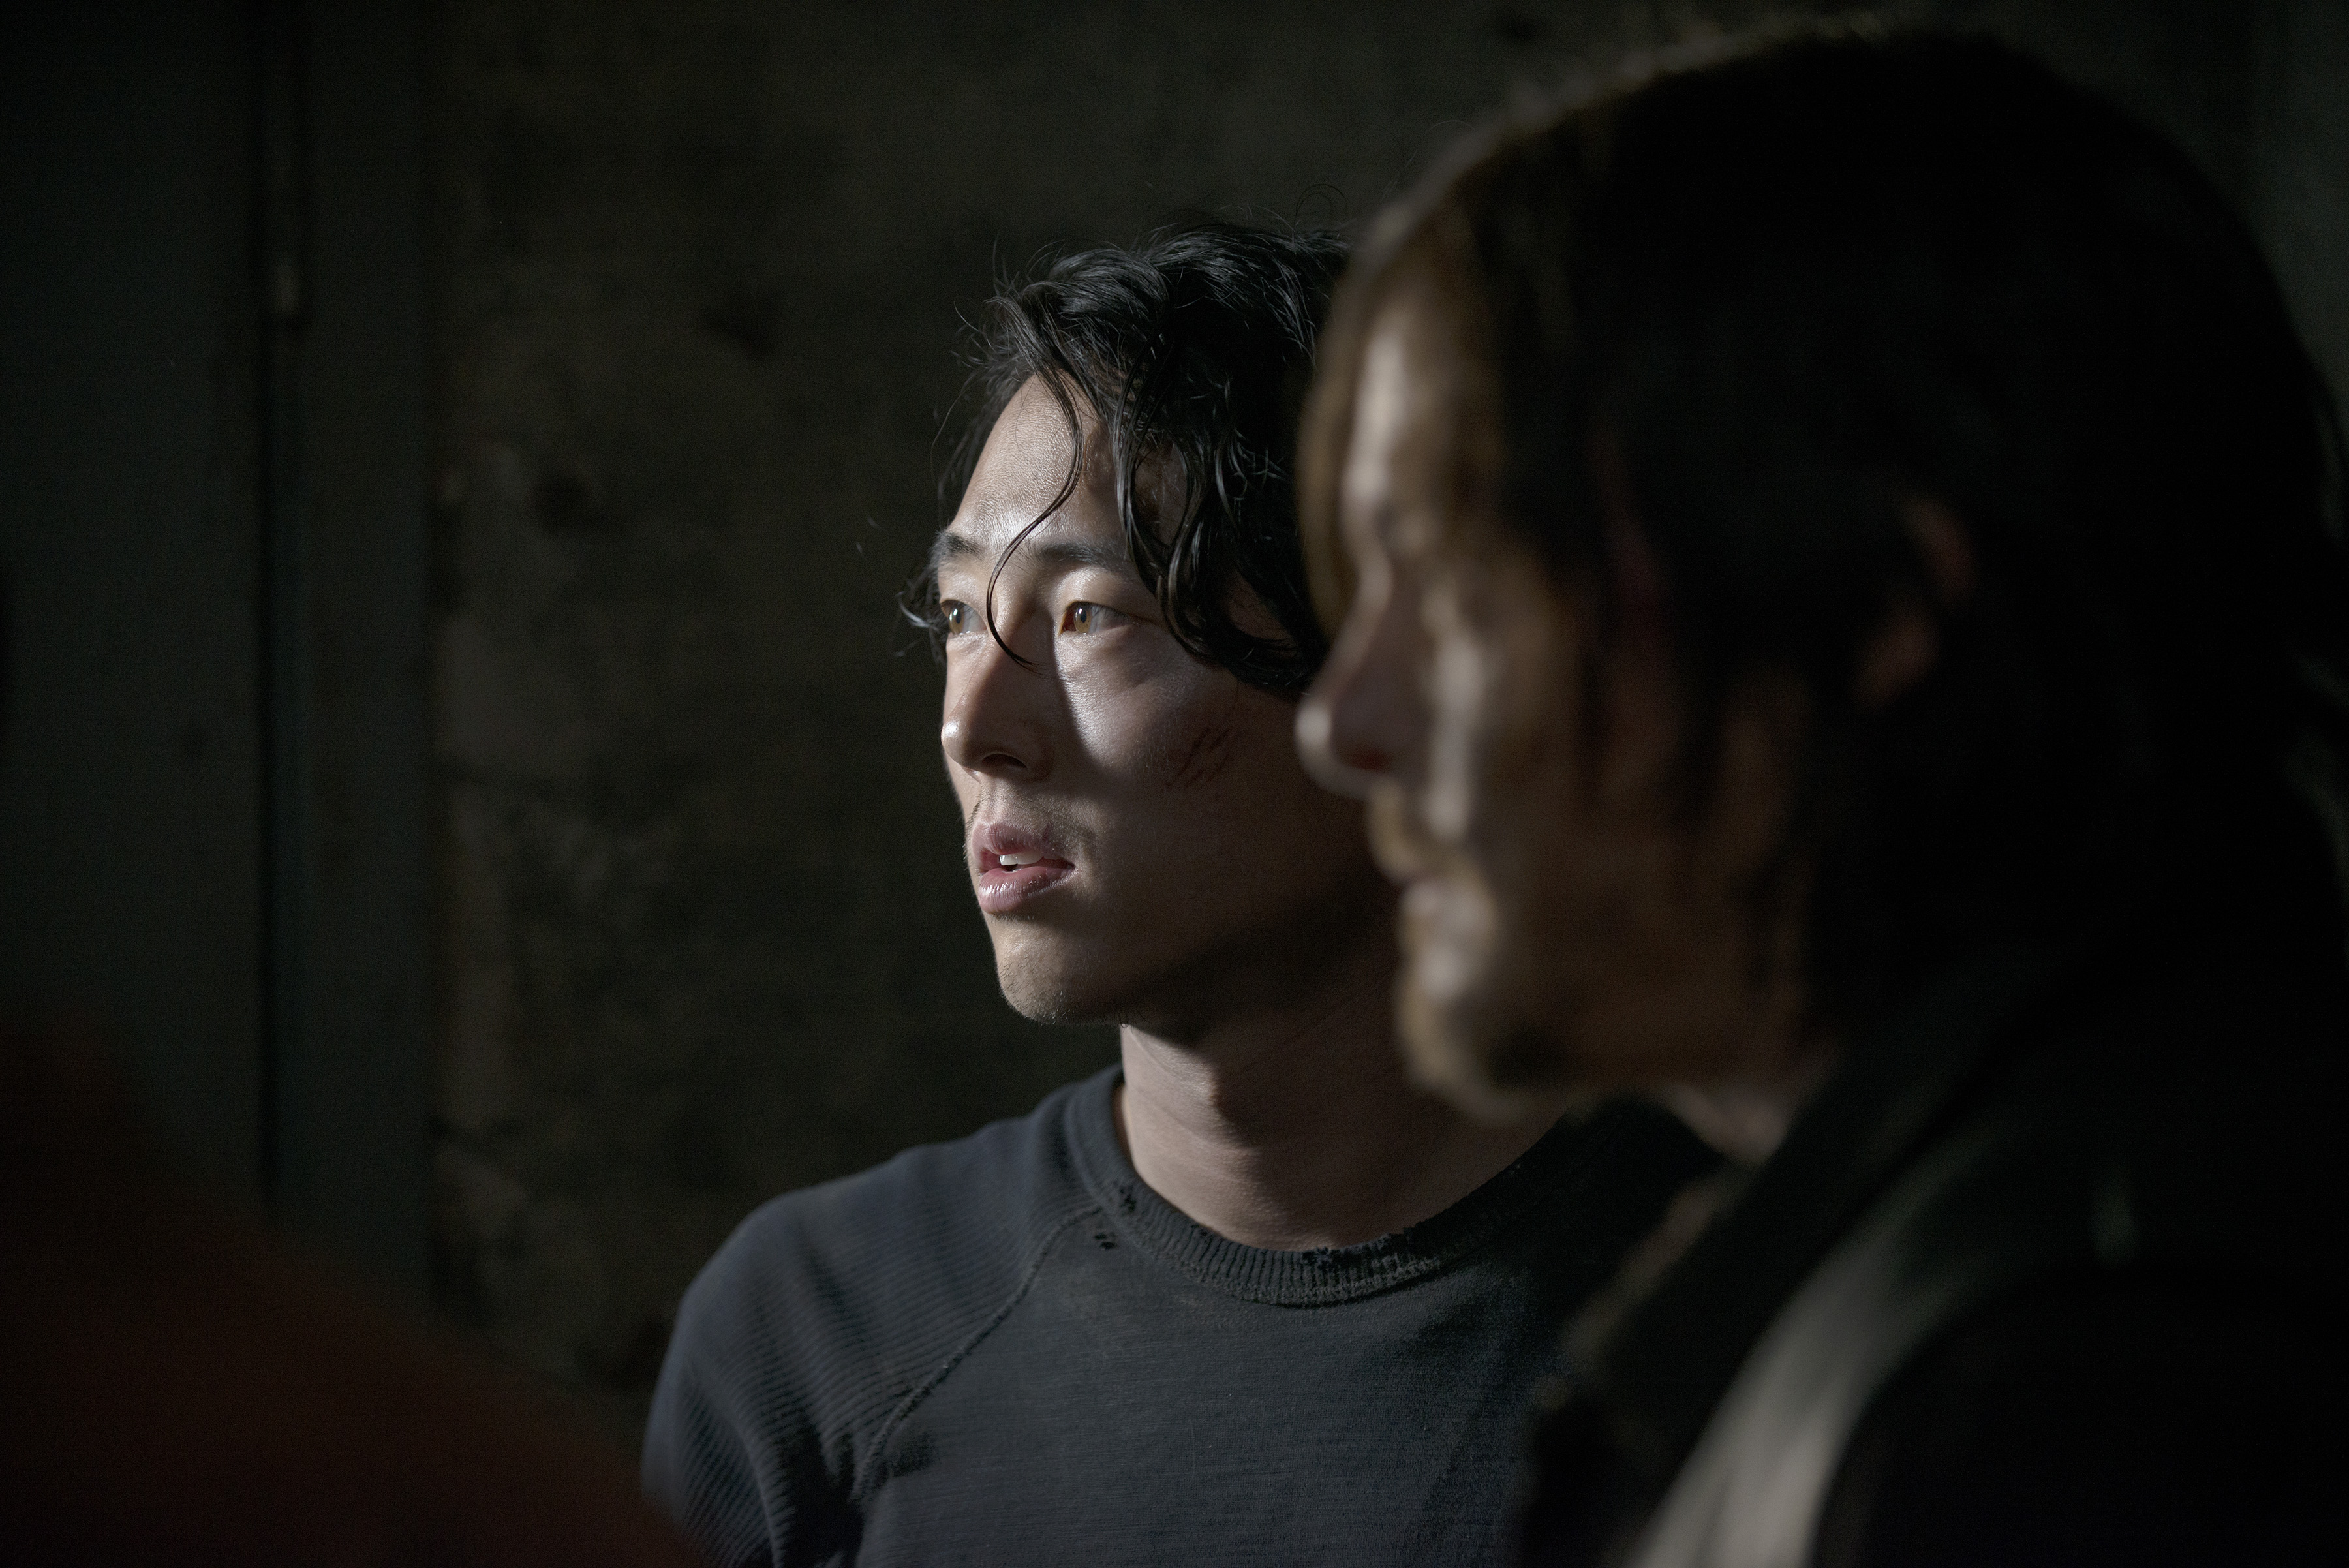 Steven Yeun as Glenn Rhee and Andrew Lincoln as Rick Grimes - The Walking Dead _ Season 5, Episode 1 - Photo Credit: Gene Page/AMC